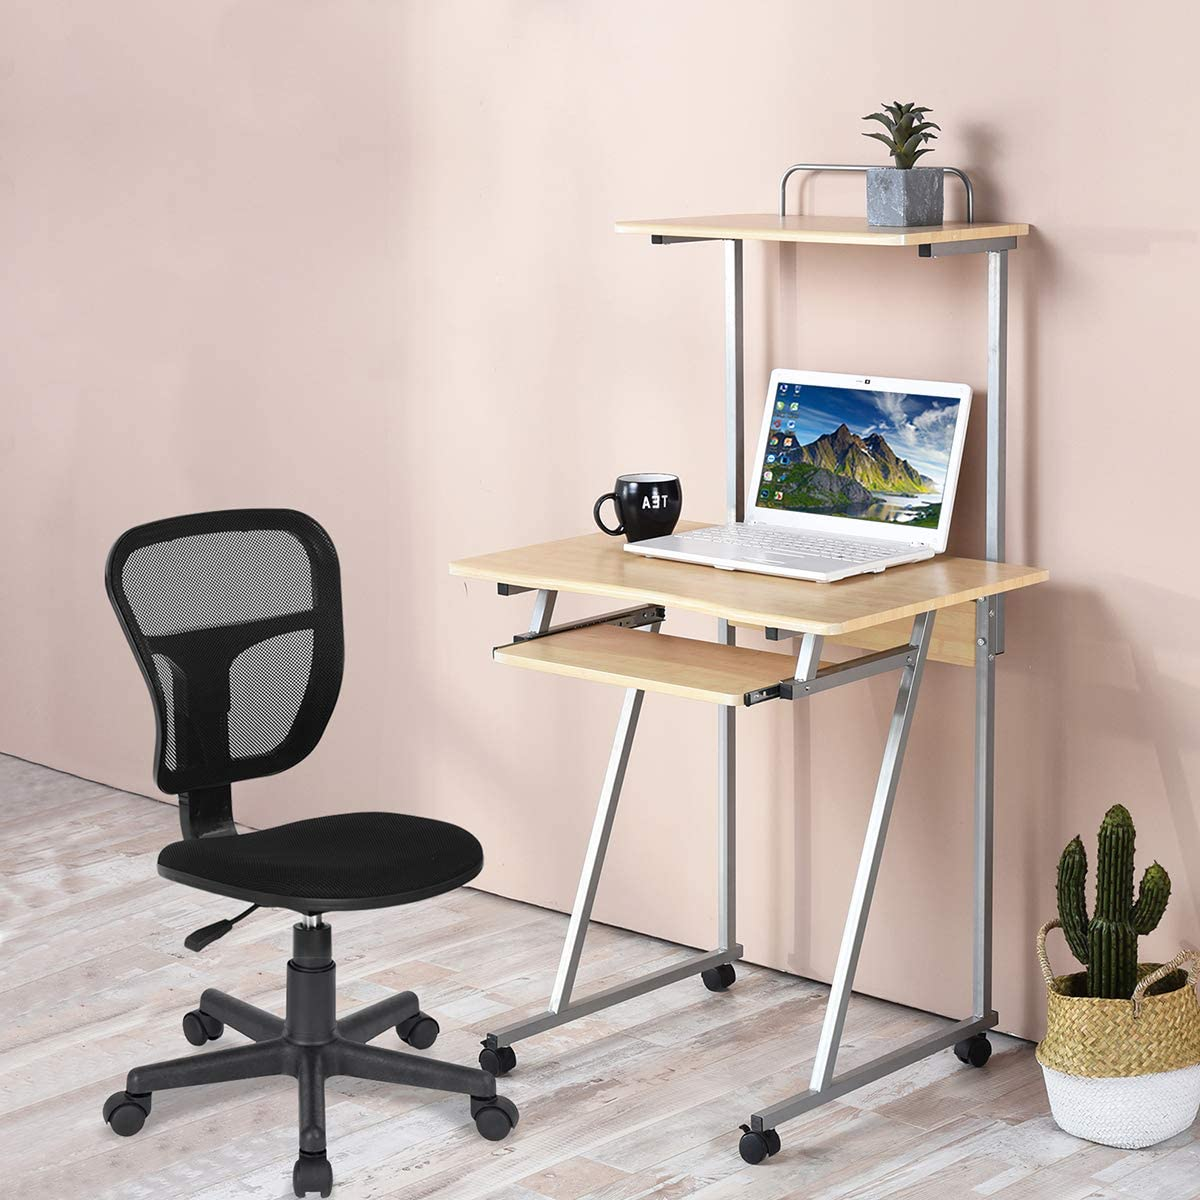 Aingoo Workstation Desk with Casters